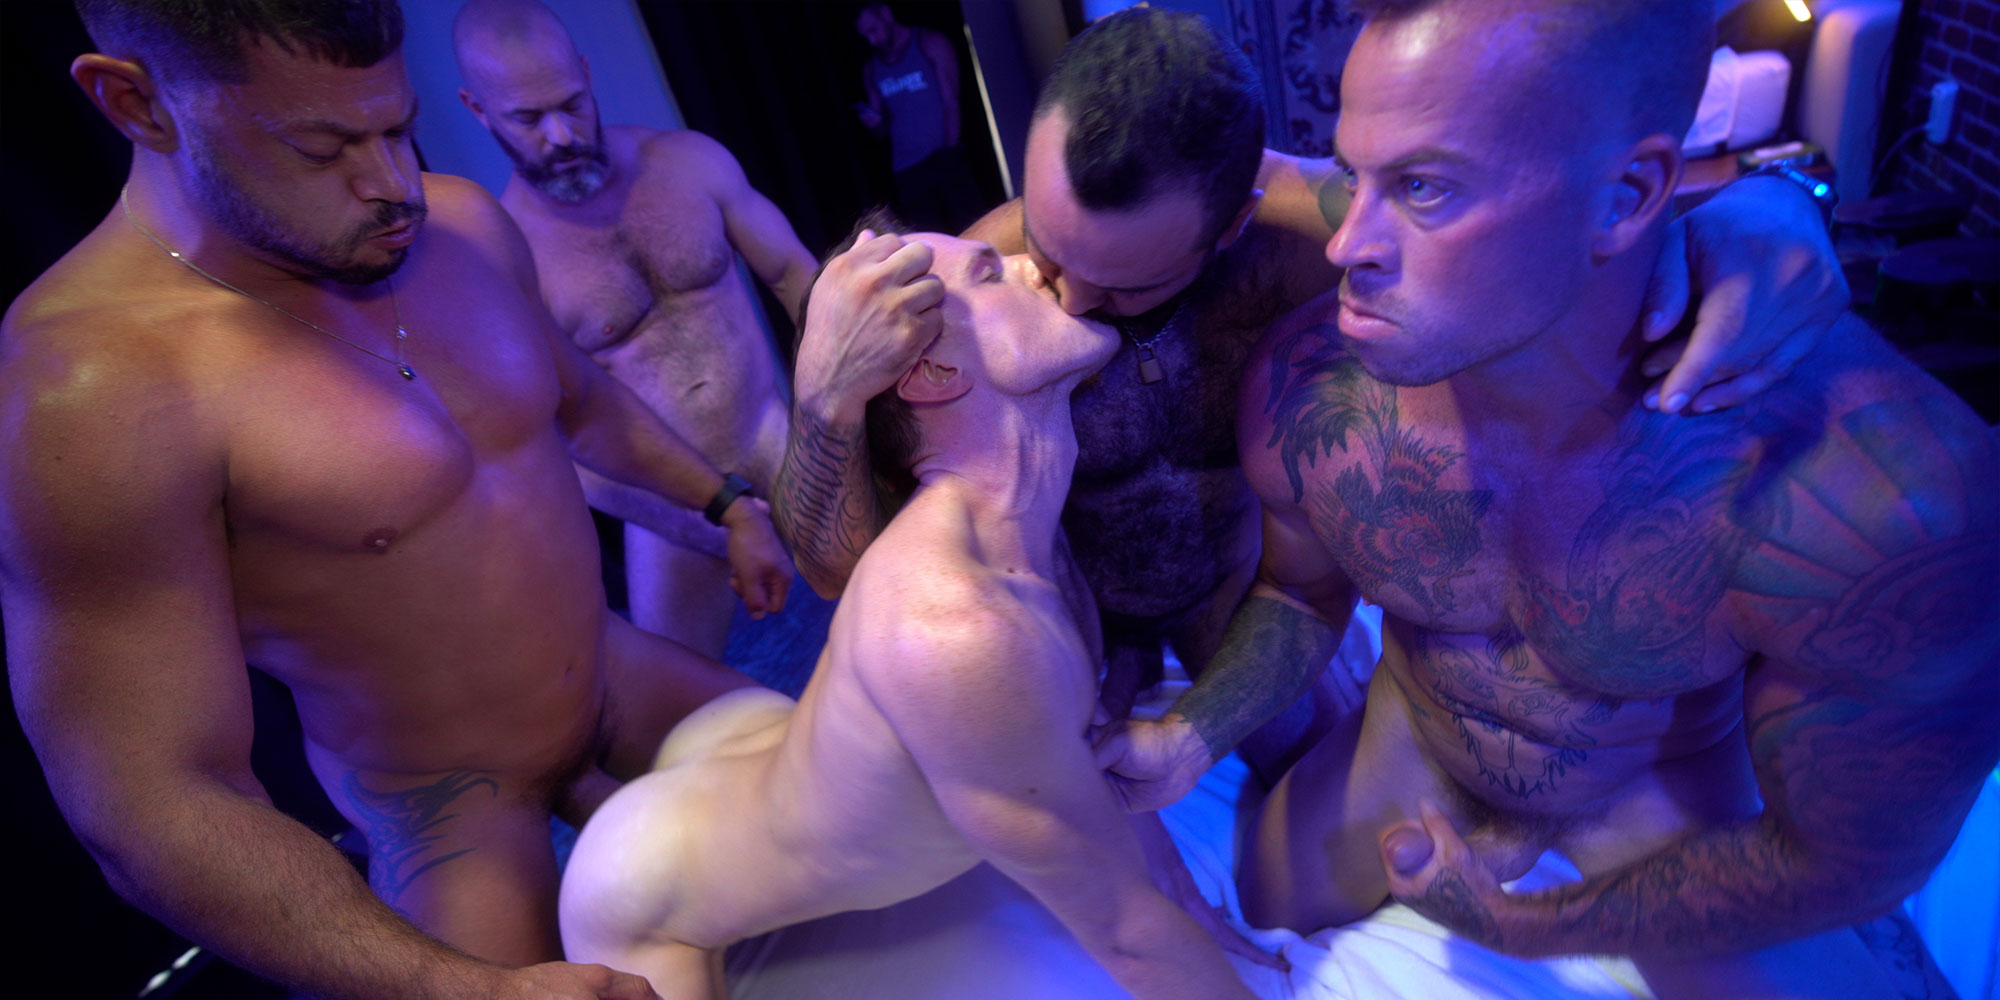 Raw Fuck Club gay porn presents producers and channels with video content